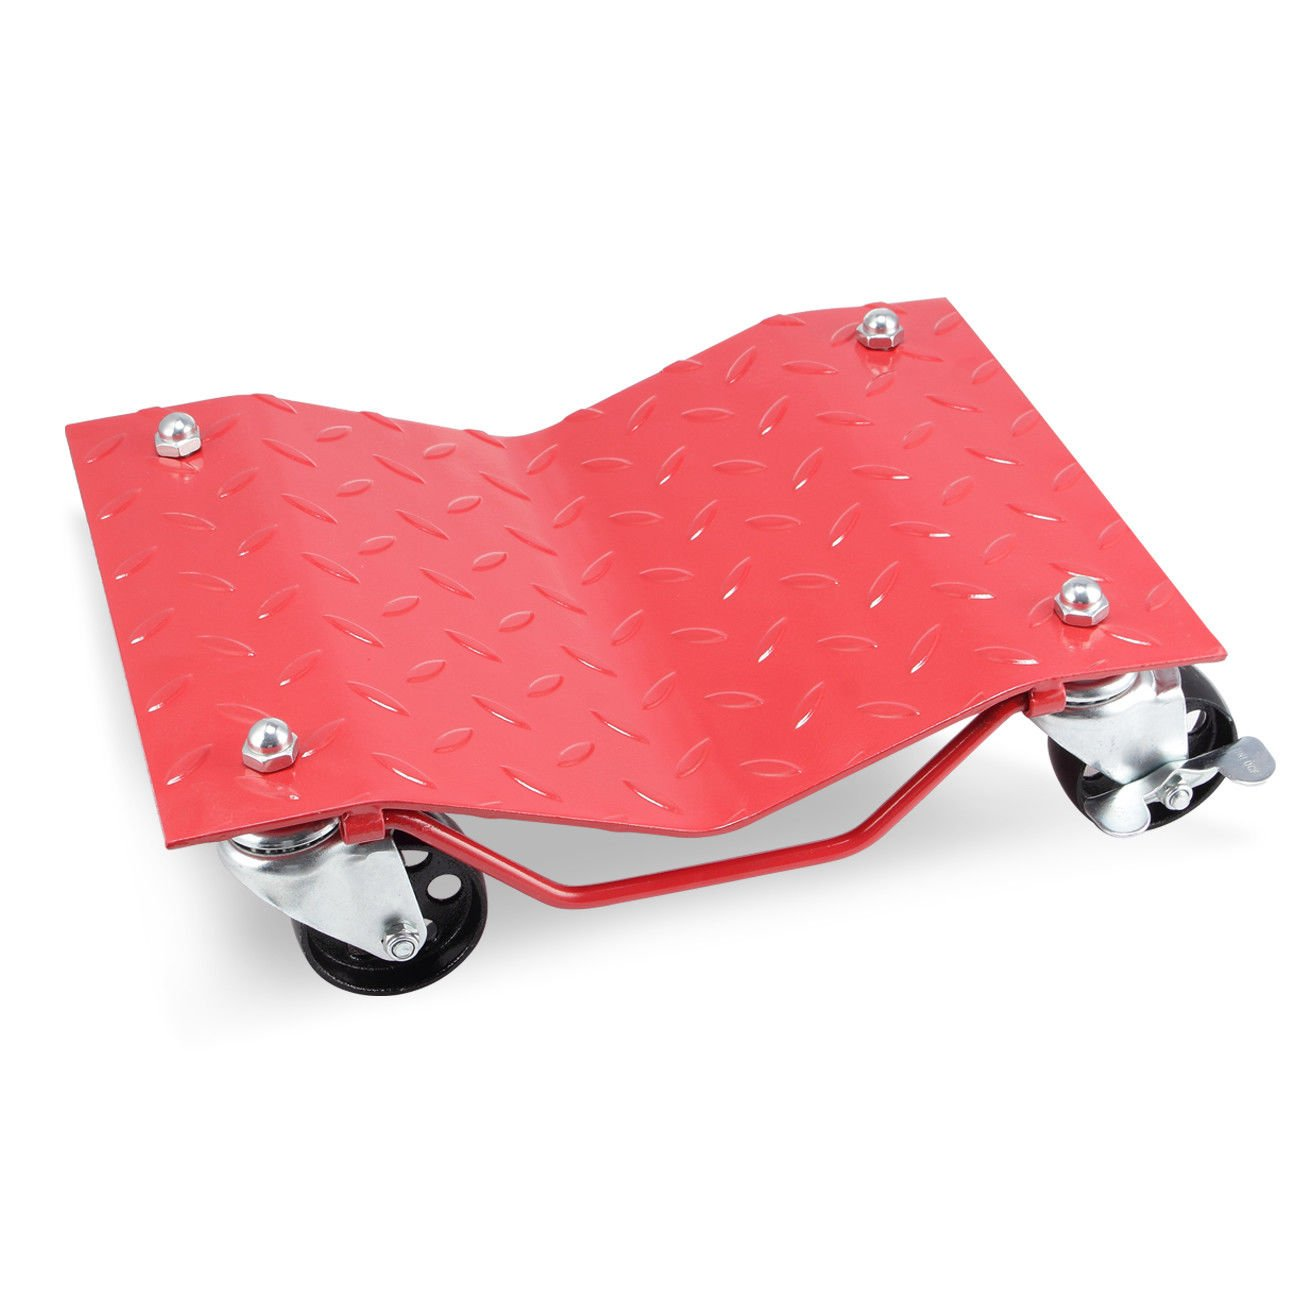 GHP 2-Pcs Red 1500-Lbs Capacity Steel Car Wheel Dollies with 3'' Casters & Lock by Globe House Products (Image #2)